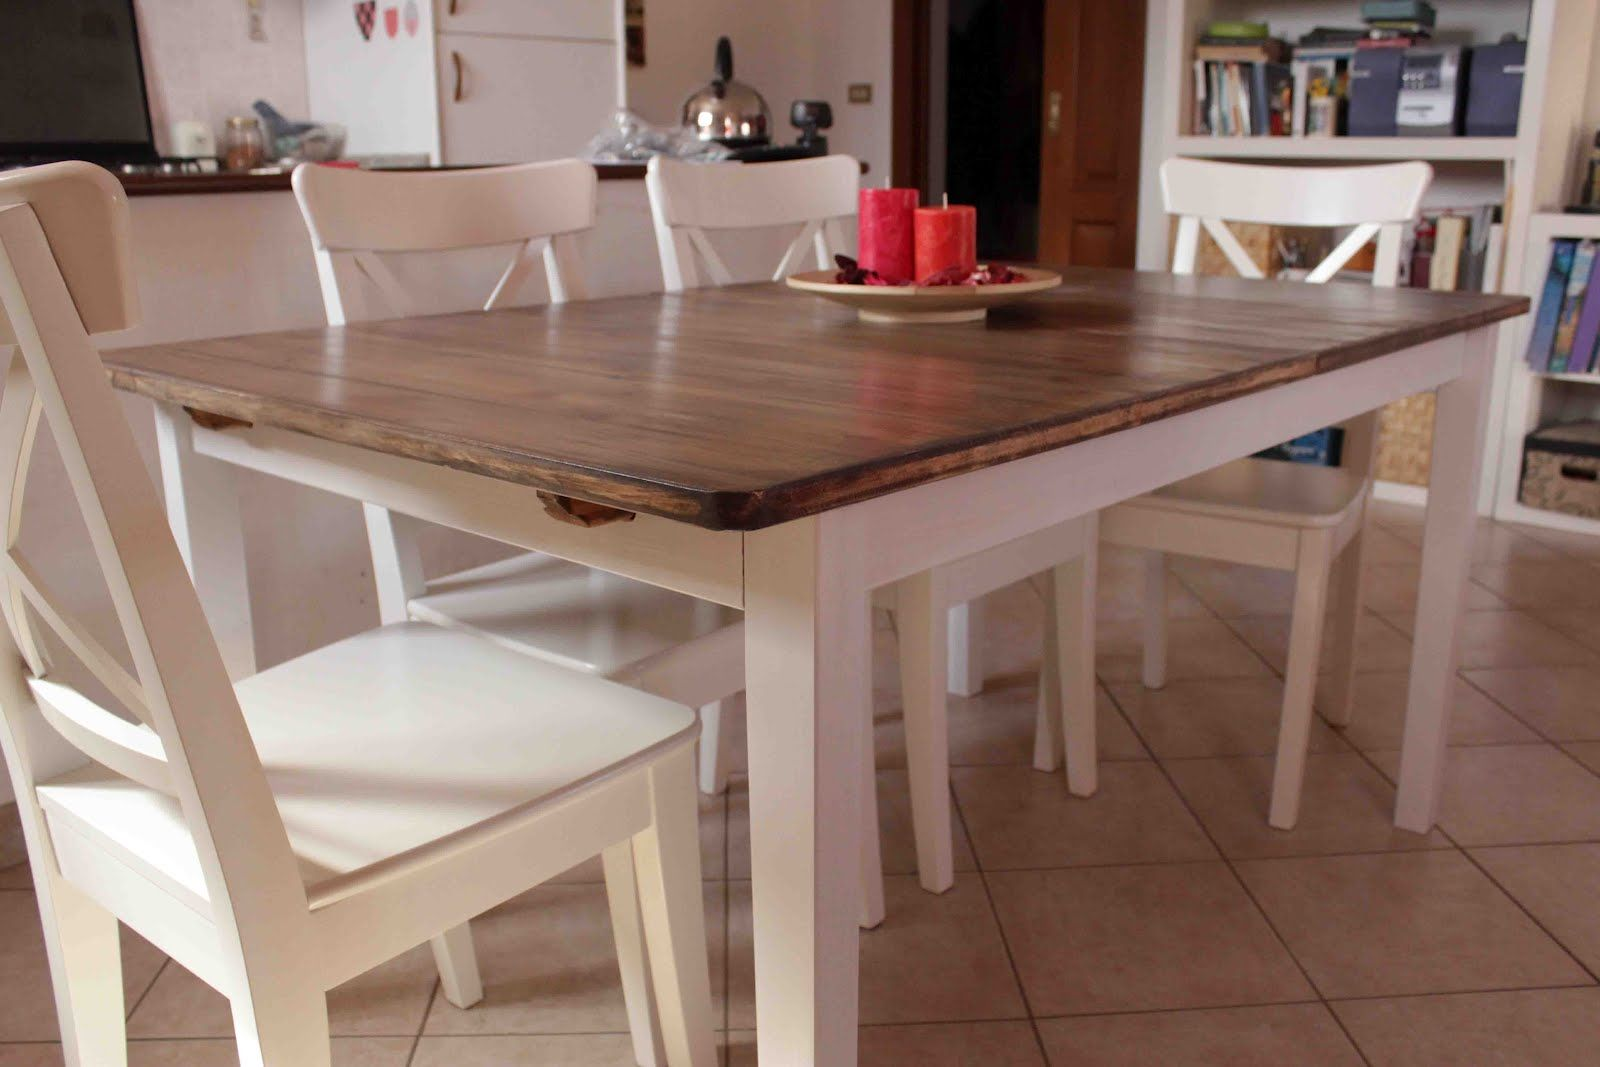 Make Your Own Country Kitchen Table With A Cheap Ikea Table This